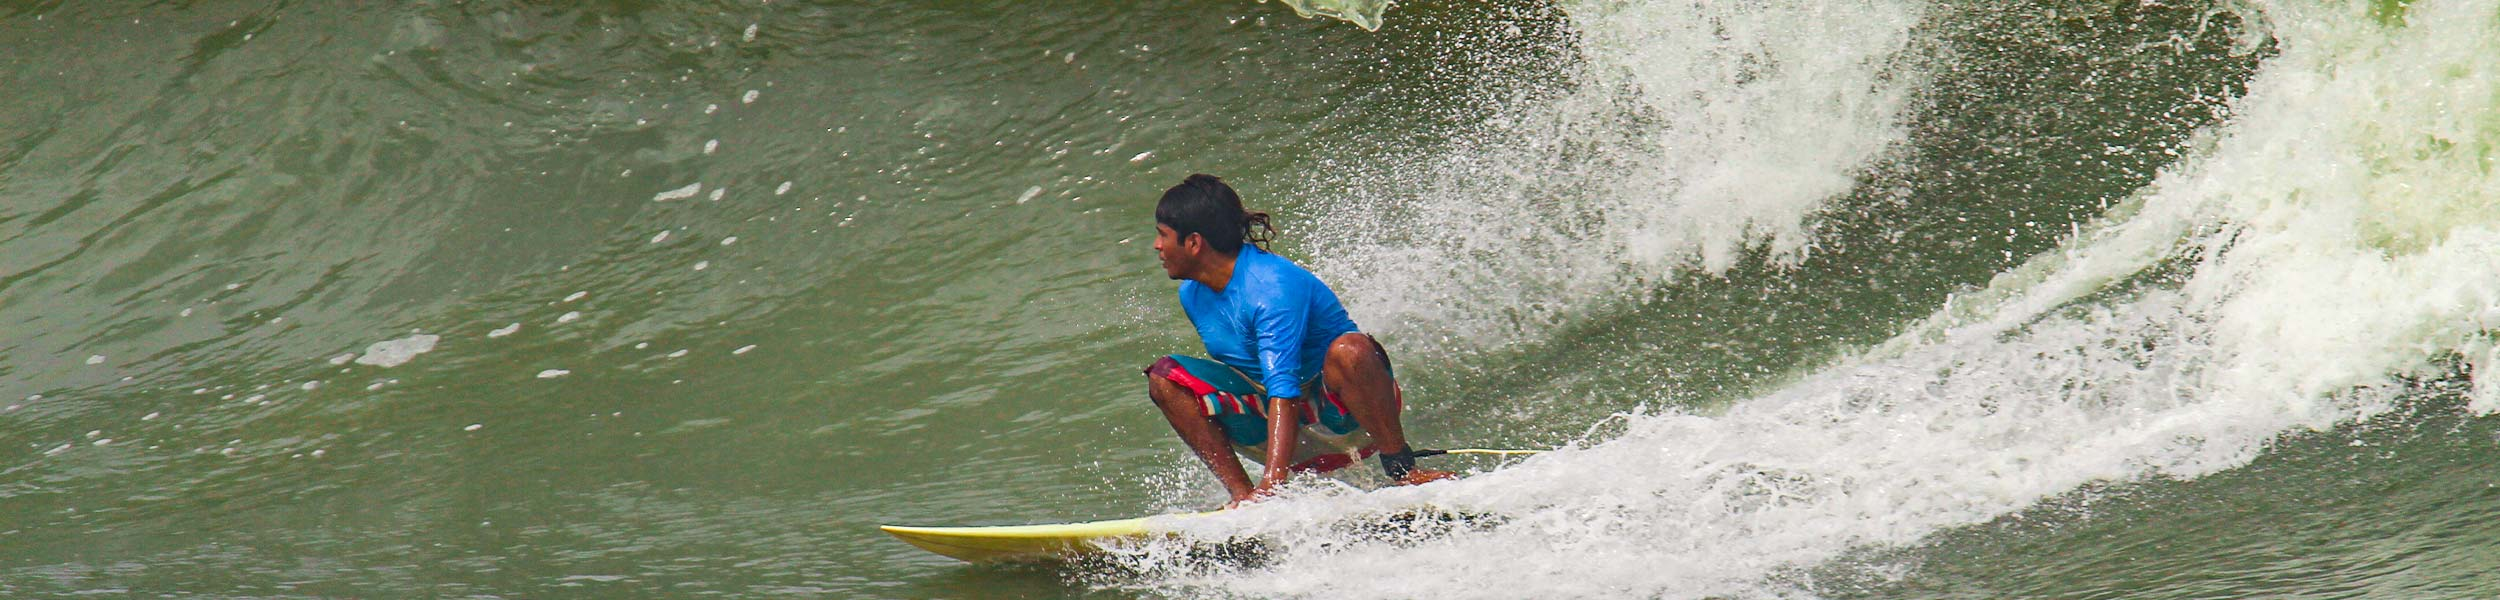 advanced surf course - mantra surf club, surfing india